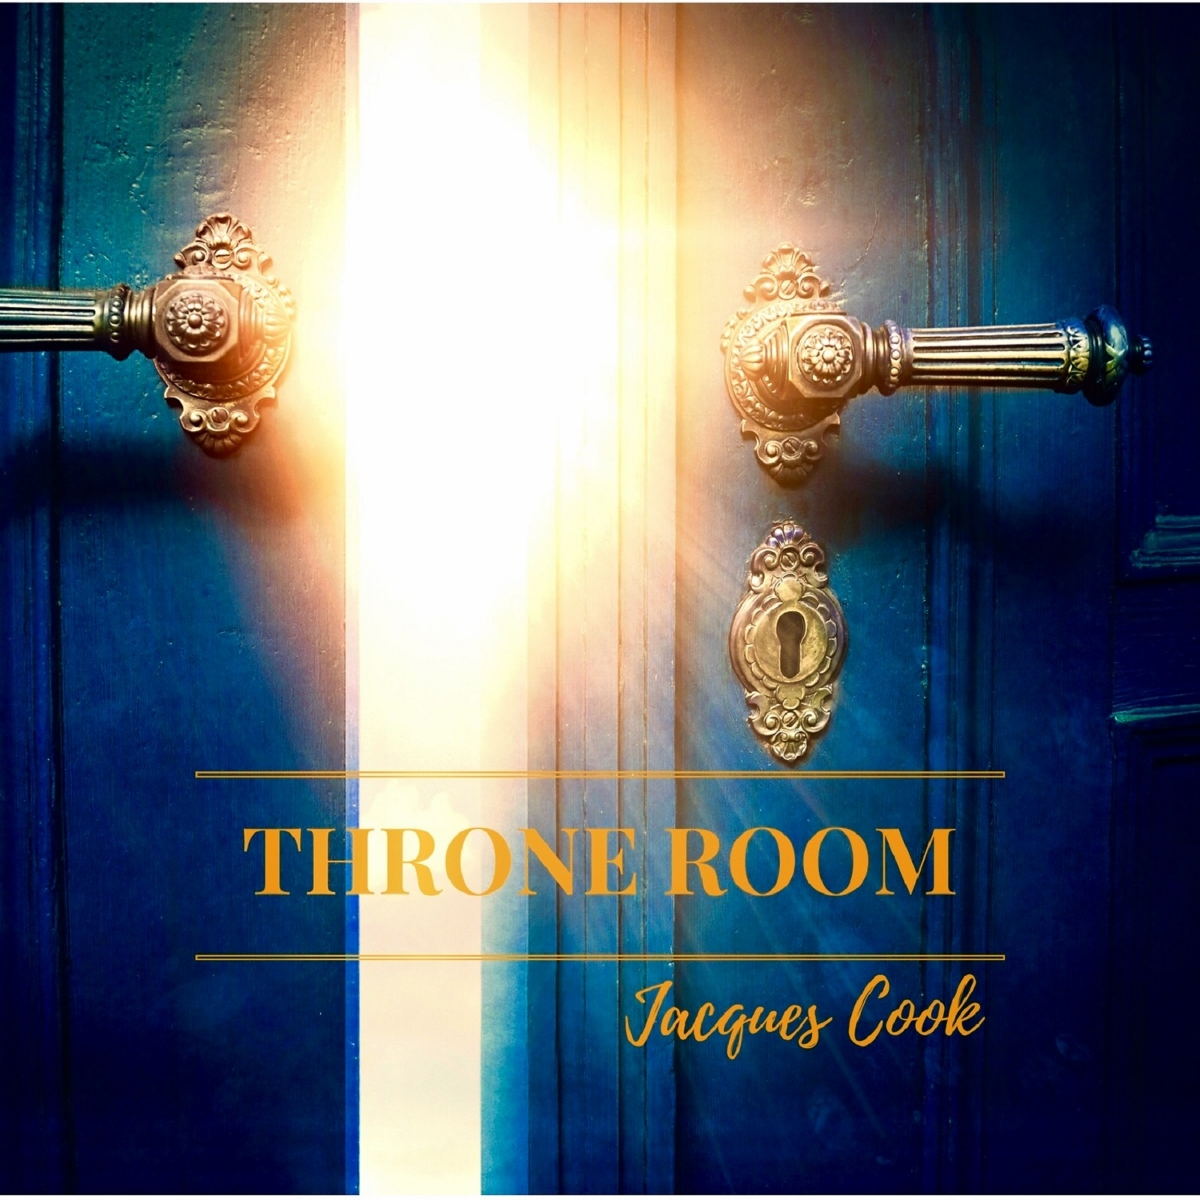 For the King on Throne Room by Jacques Cook